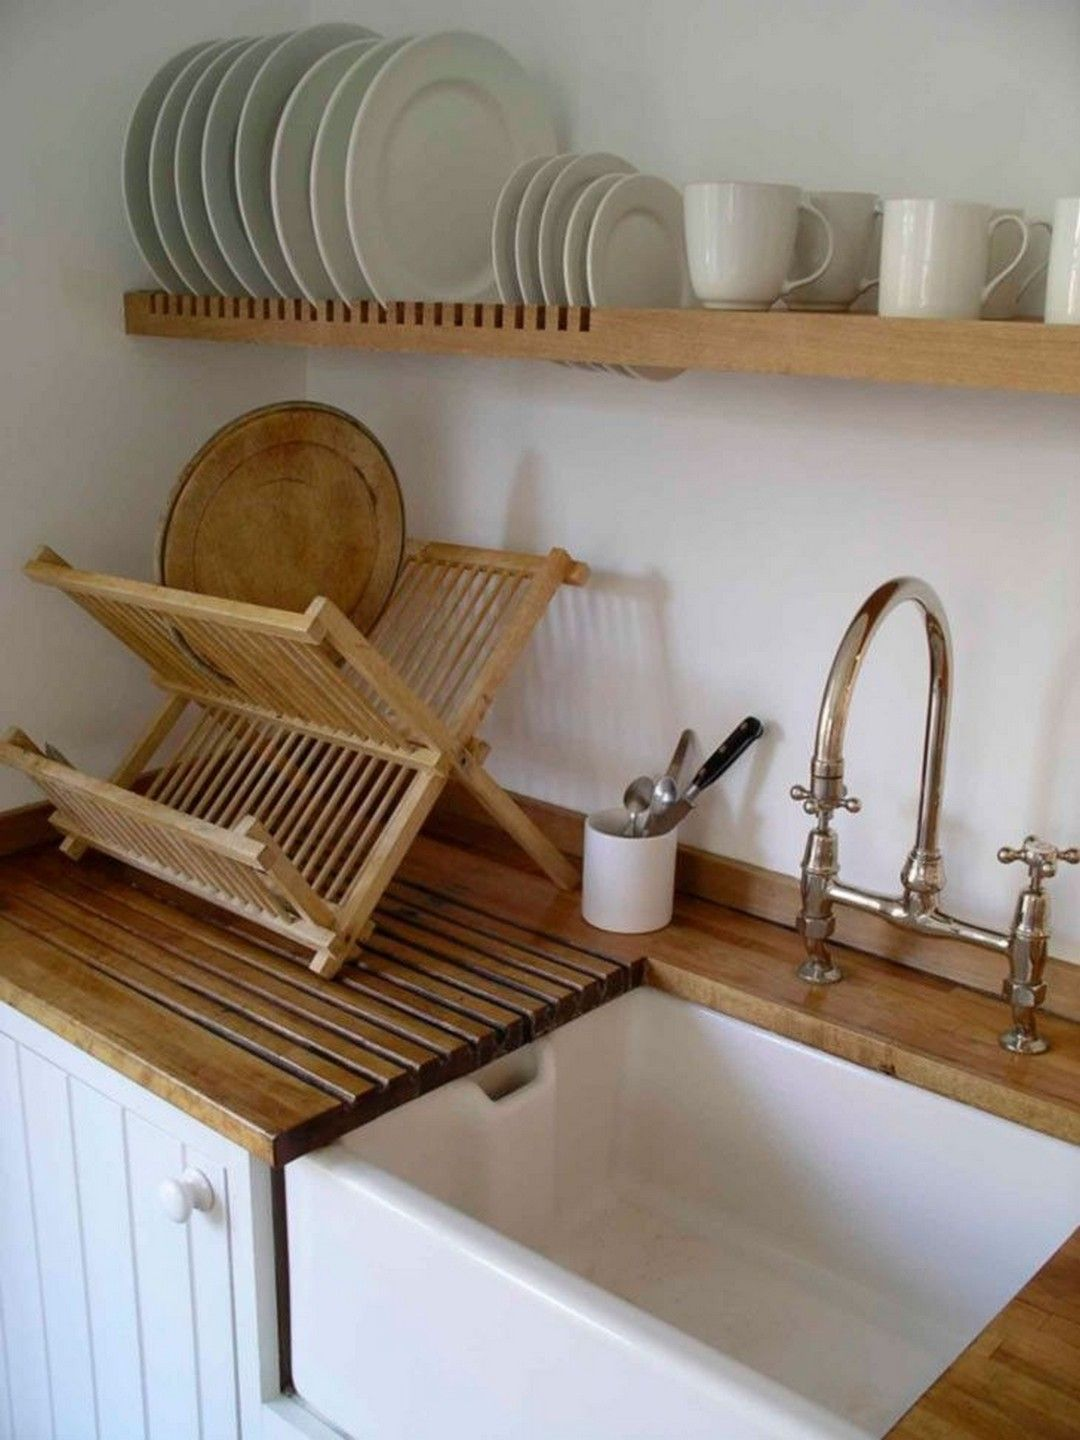 25 Storage Ideas To Steal From High End Kitchen Systems Https Www